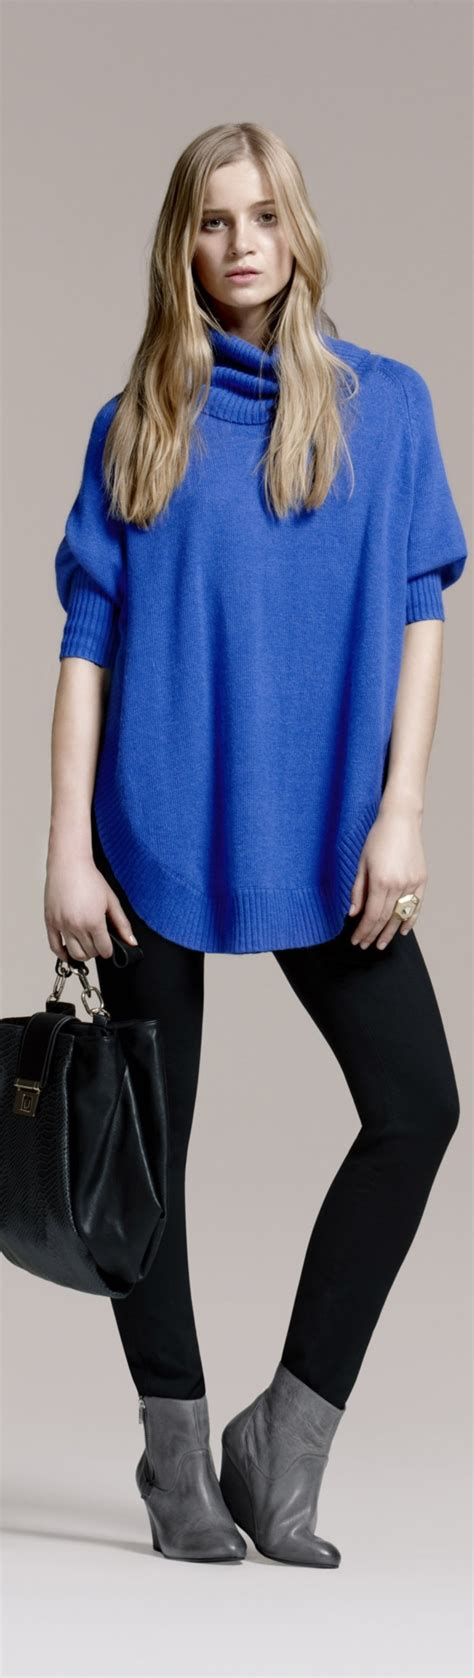 pinterest fashion for women over 40 pinterest women fashion over 40 spring outfits 2014 for